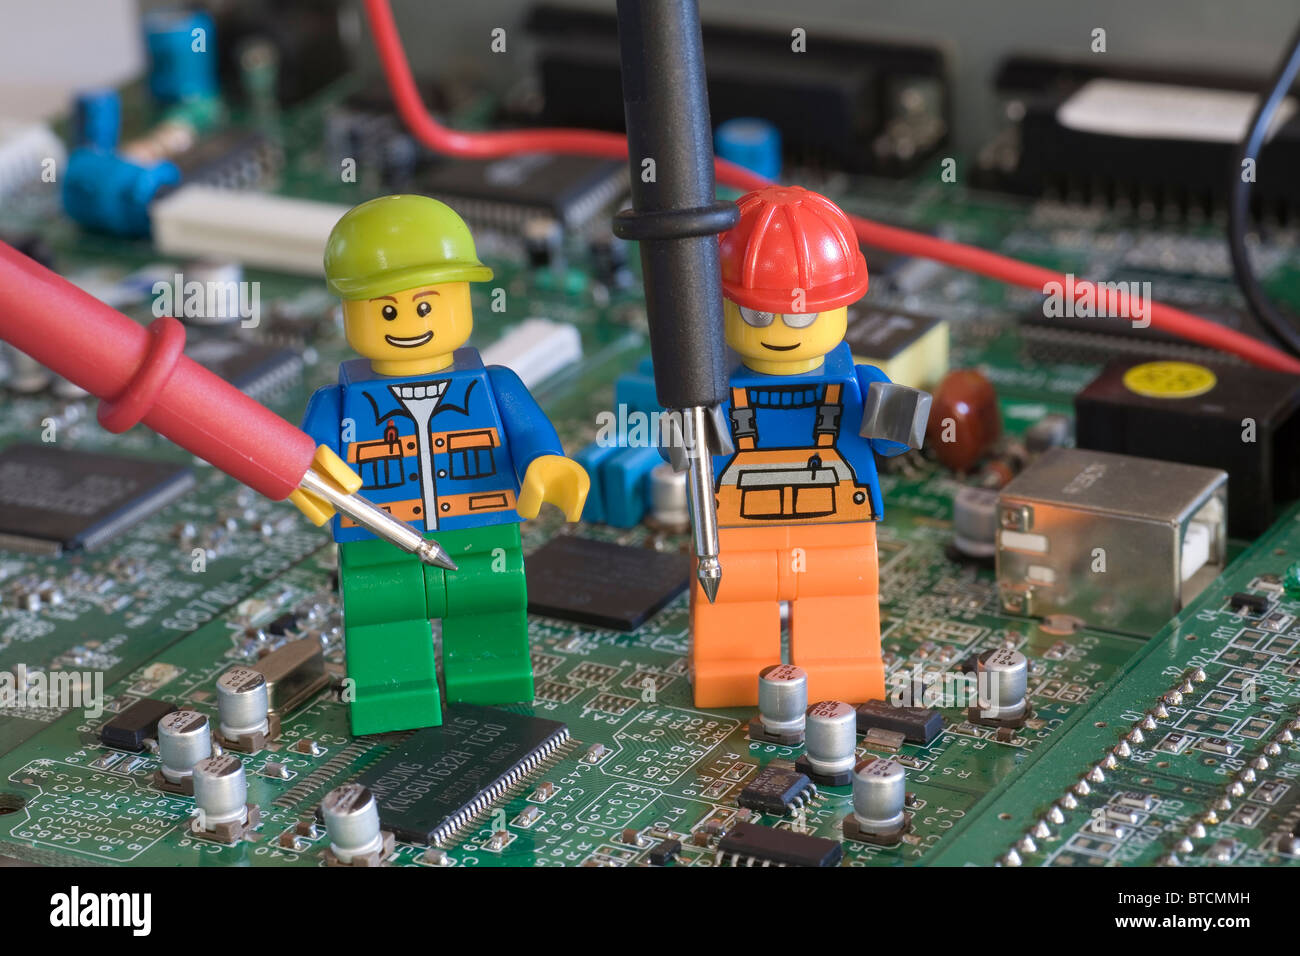 Lego engineers on an electronic circuit board with testing probes     Lego engineers on an electronic circuit board with testing probes